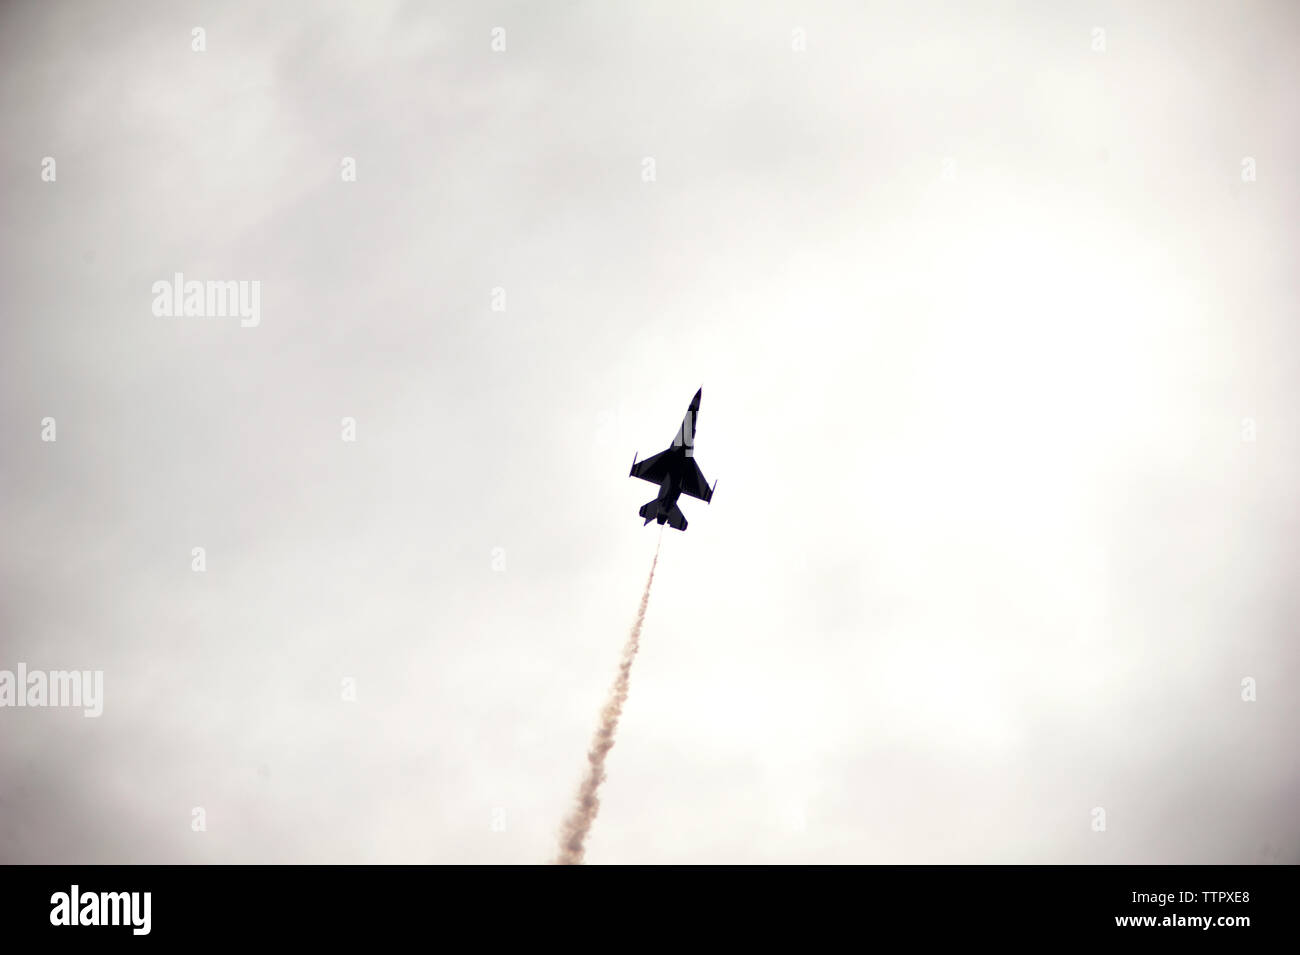 Low angle view of military airplane flying in cloudy sky - Stock Image